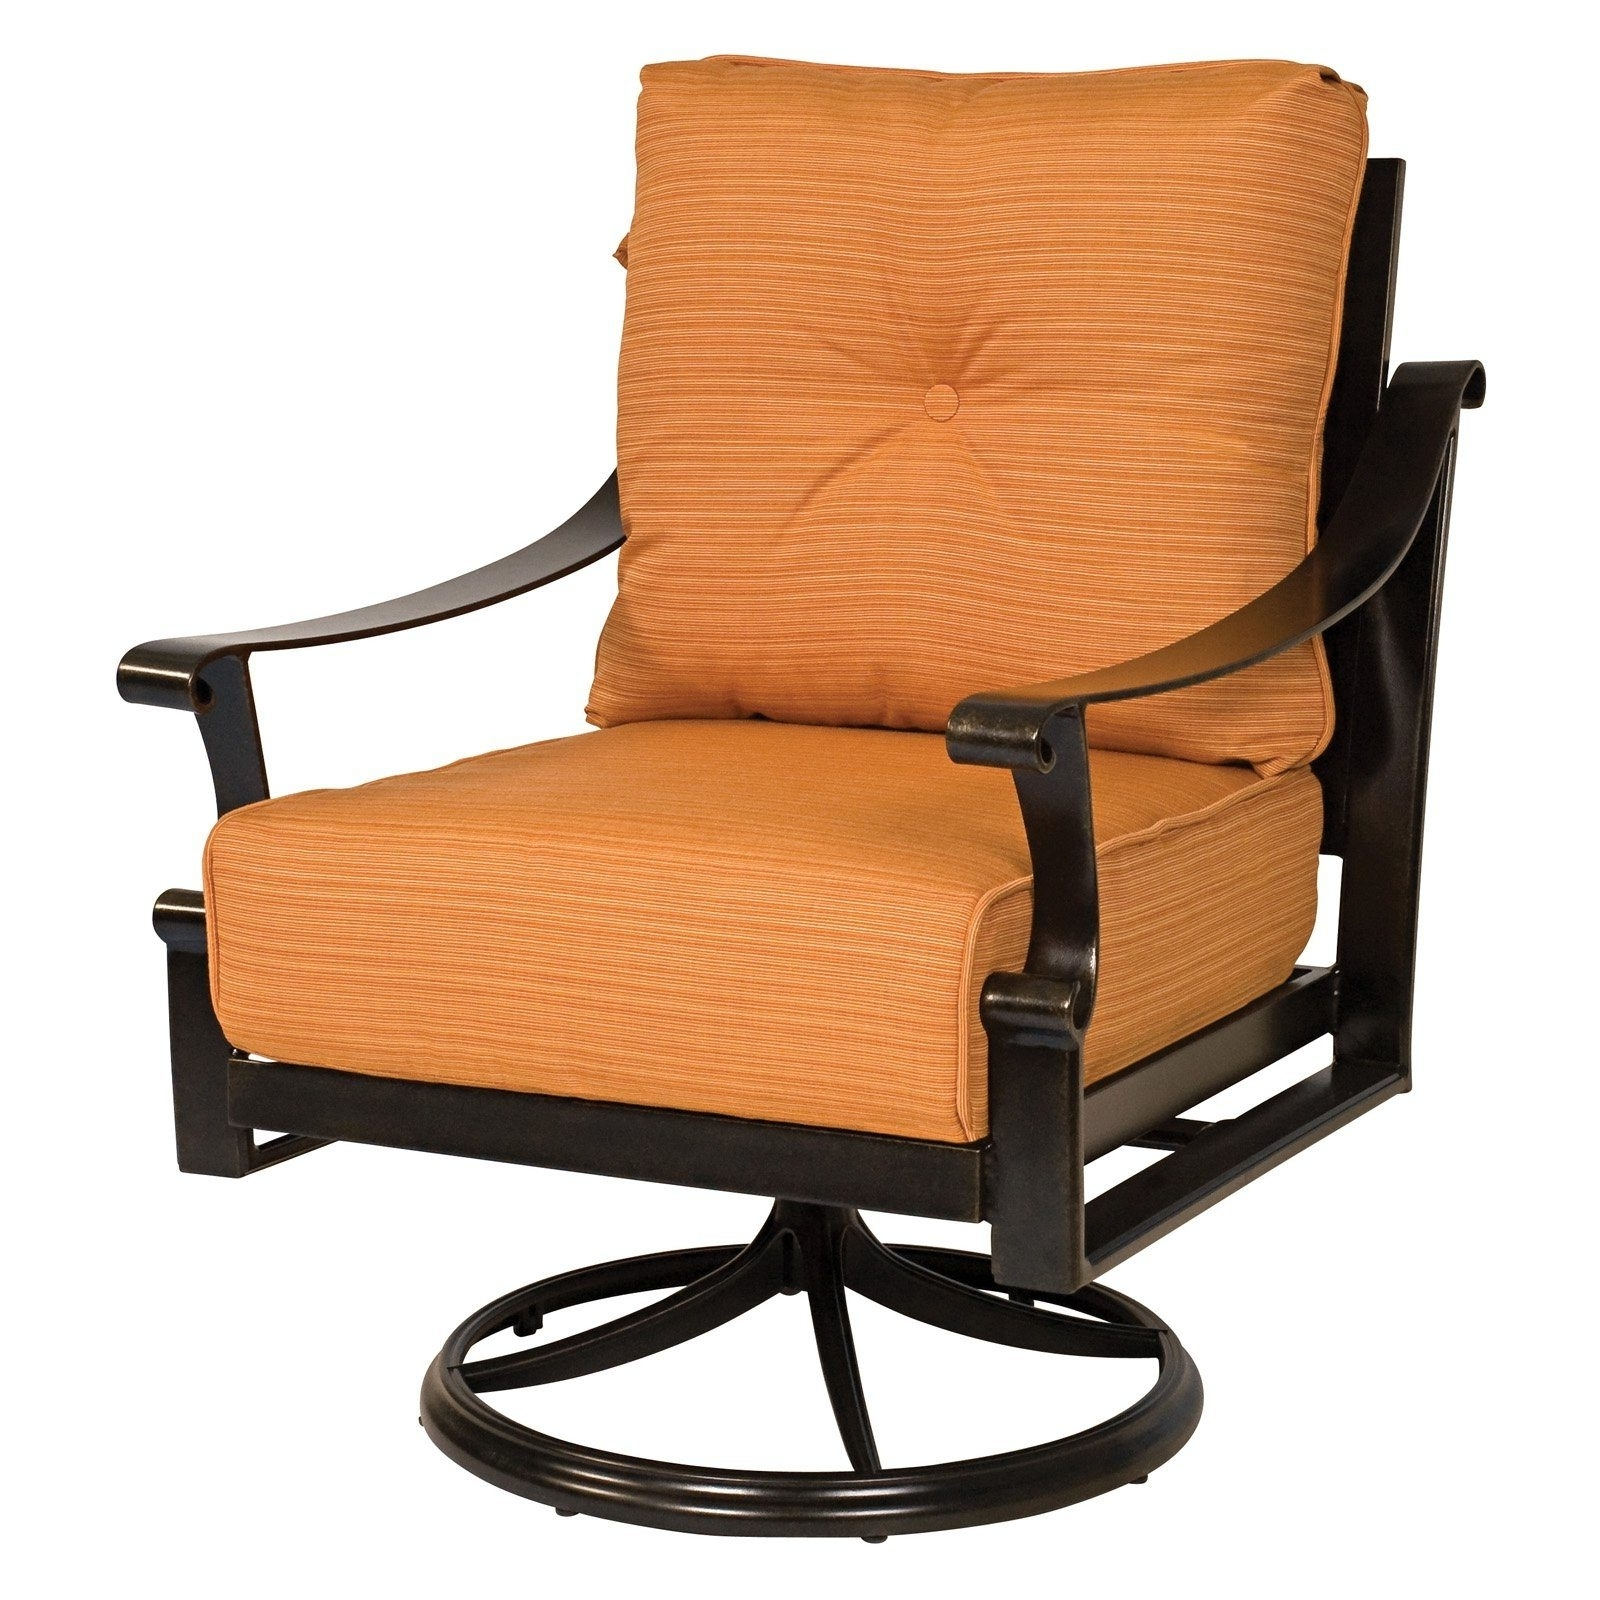 Amazing Of Swivel Rocking Patio Chairs Swivel Rocker Patio Furniture Pertaining To Most Up To Date Patio Rocking Chairs With Covers (View 1 of 15)